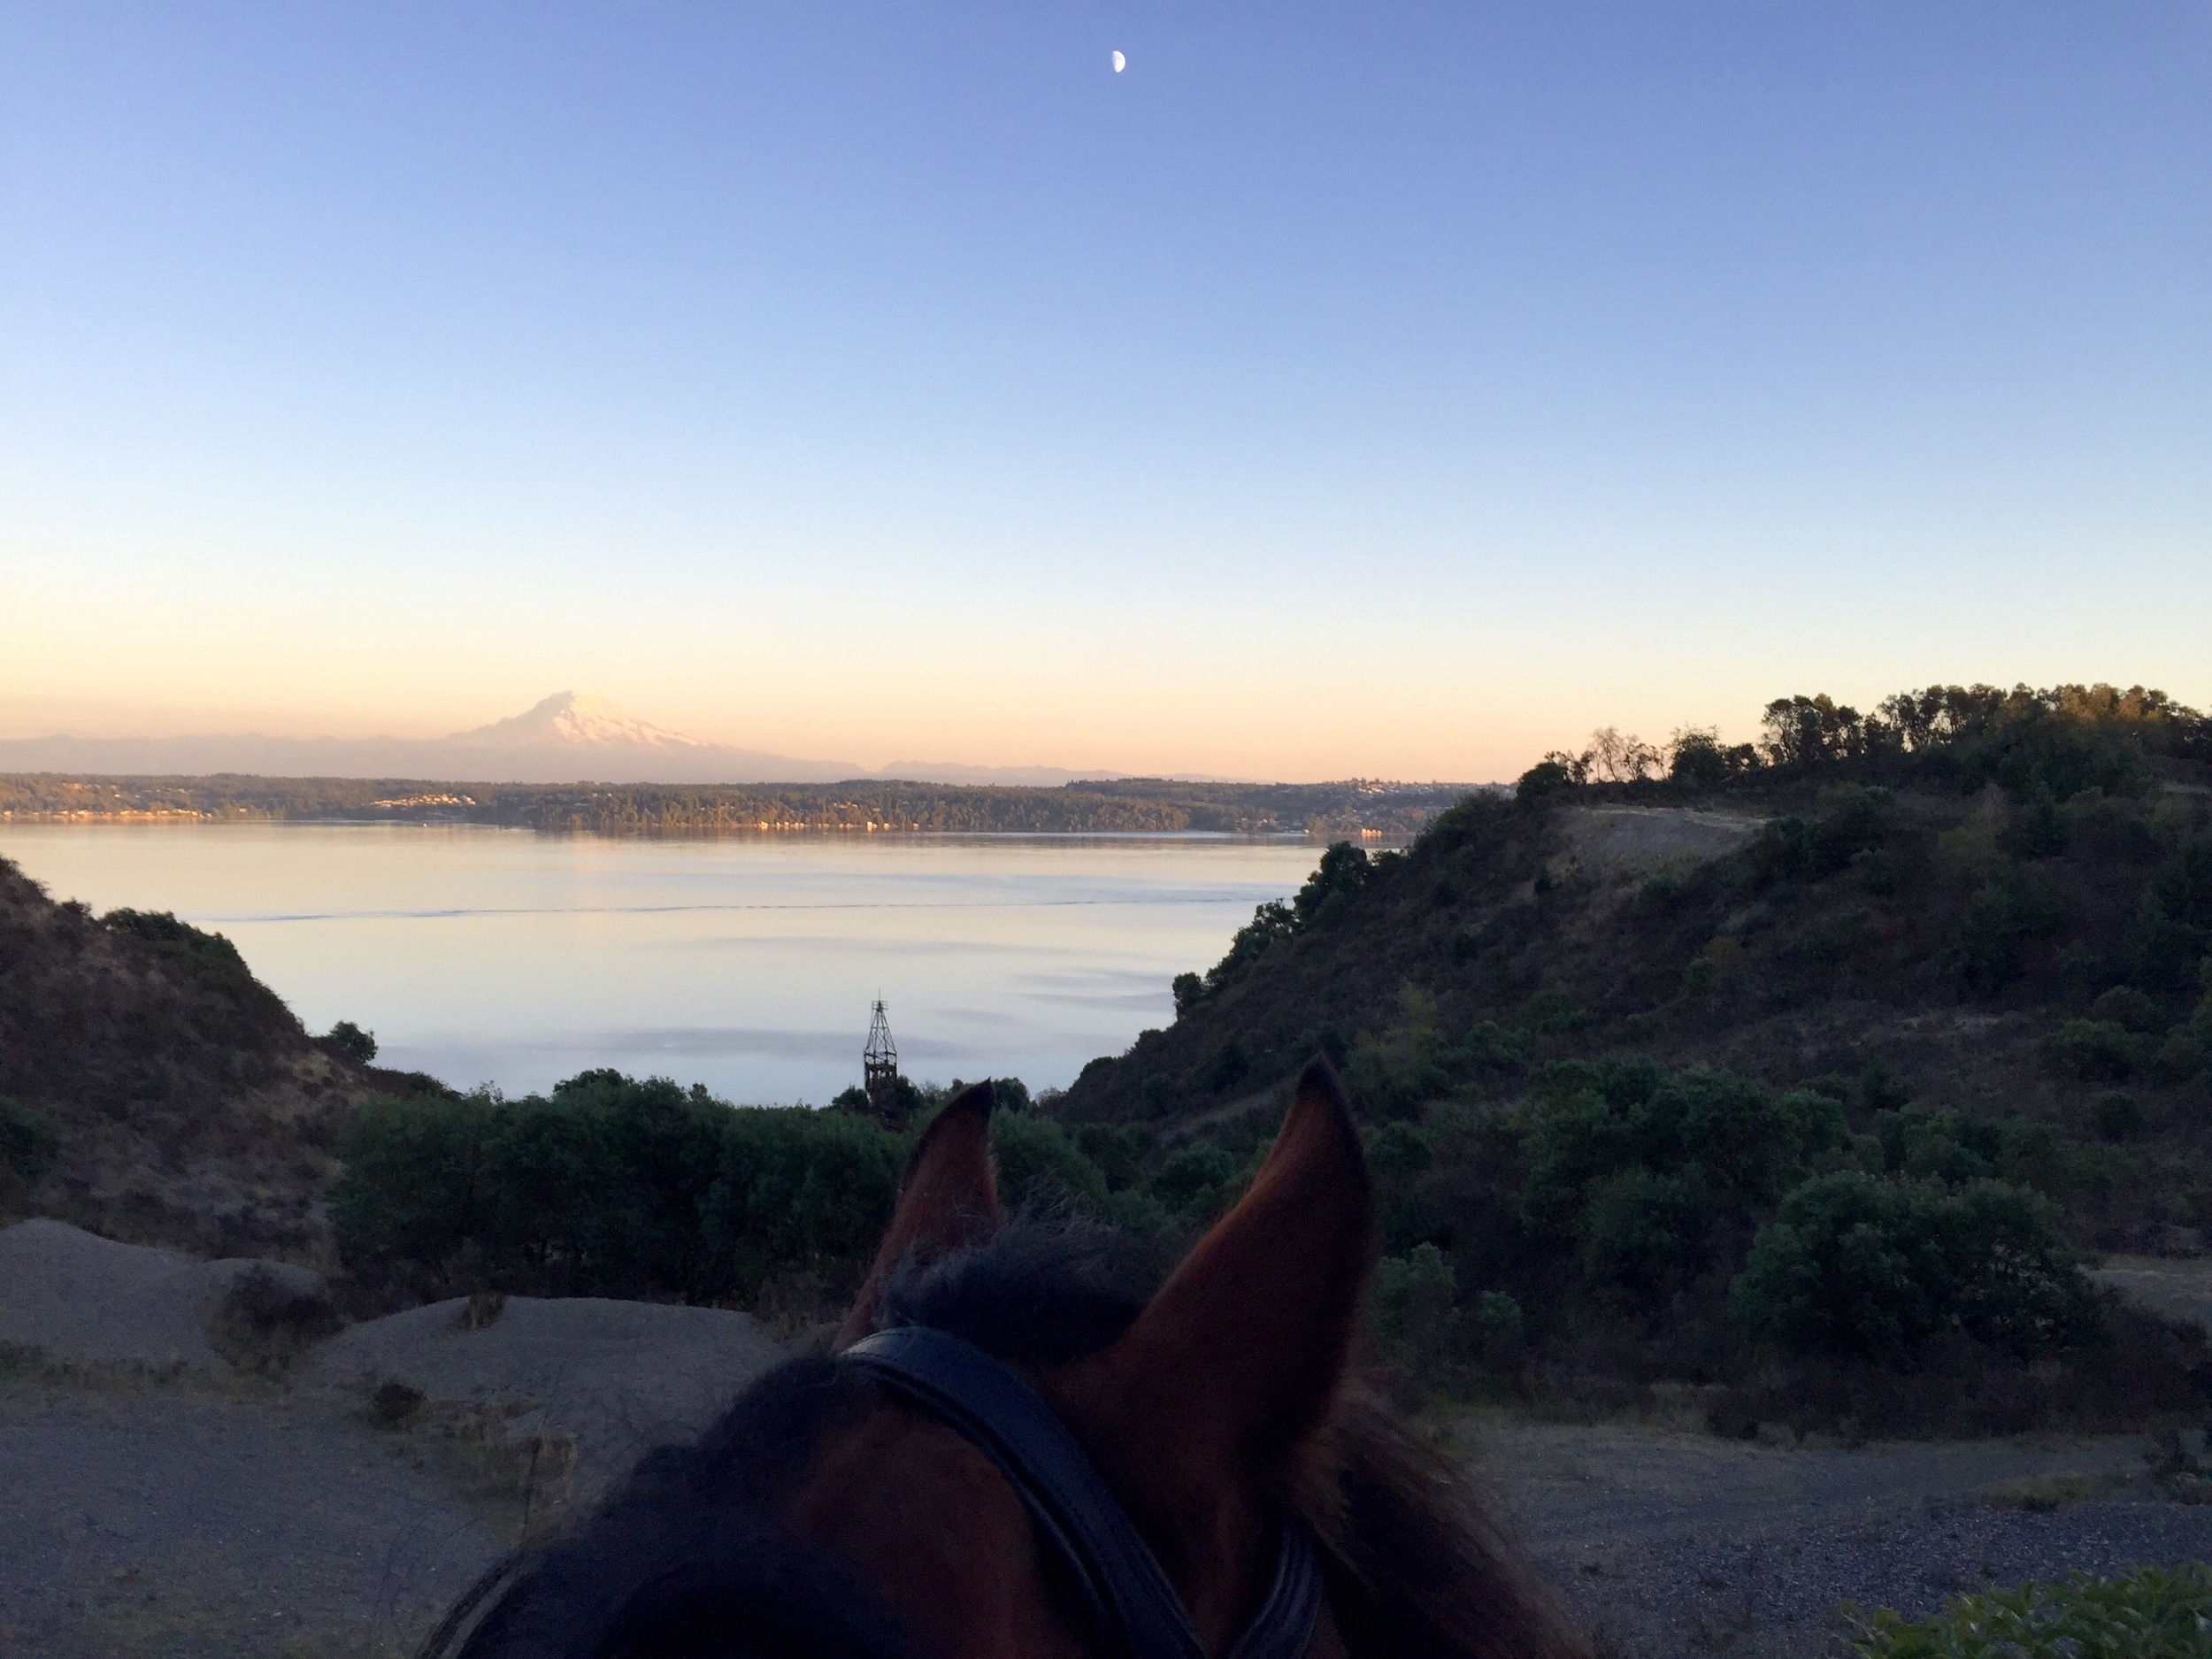 MAURY ISLAND, WASHINGTON Perfect first day of autumn and perfect evening for a hack with my dogs., by Yours Truly.  ......... Tag your photo #lifebetweentheears for a chance to be featured. Ride On! ^^ .......... #betweentheears #vashon #mauryisland #firstdayoffall #equinephotography  #eqinox #mtrainier